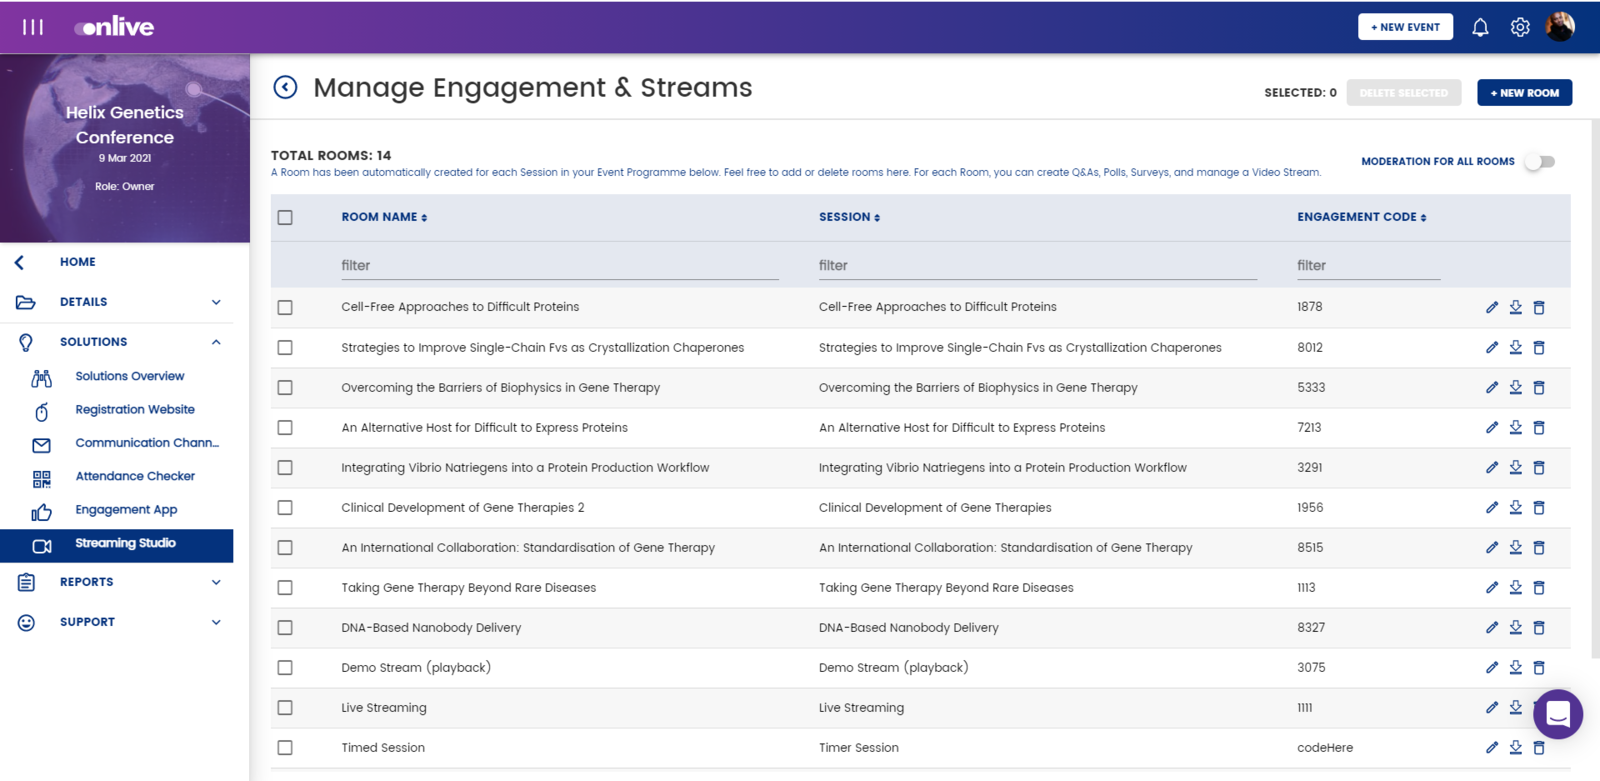 manage engagement and streams